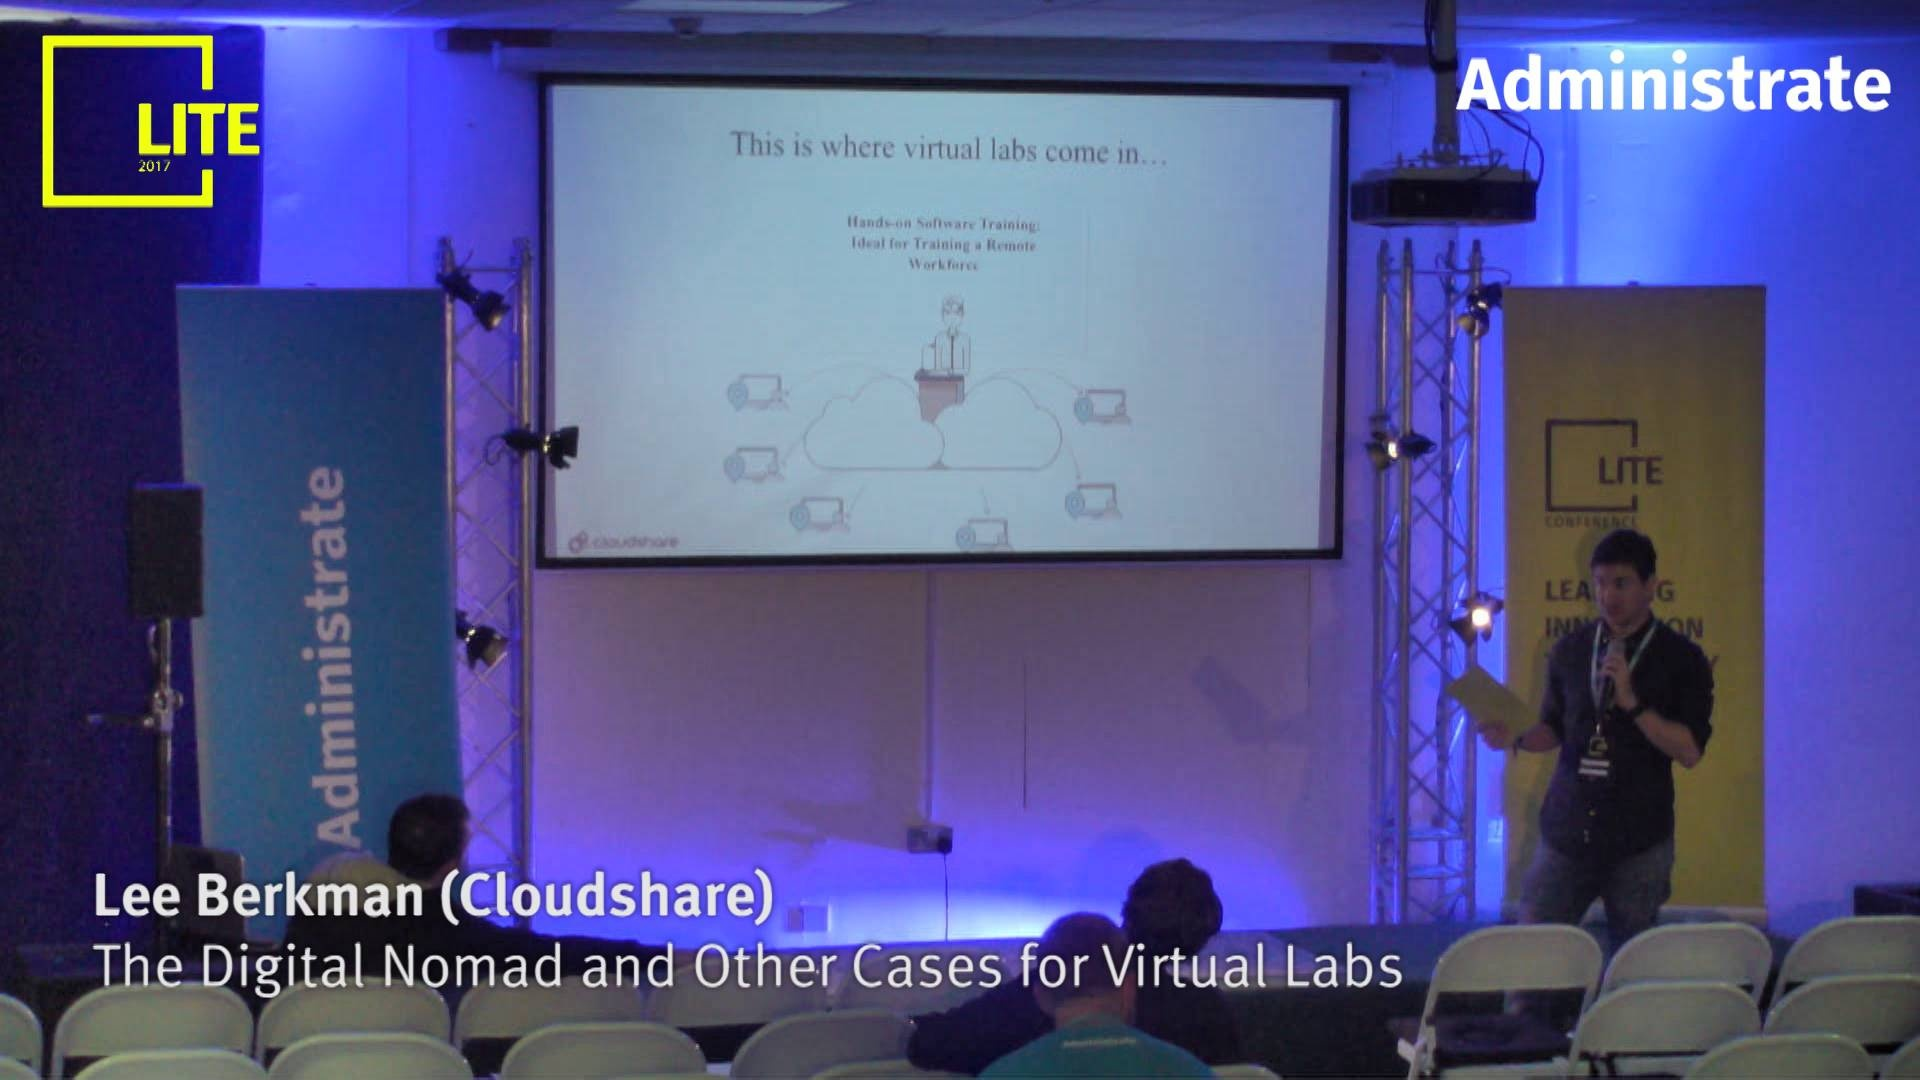 The Digital Nomad and Other Cases for Virtual Labs [Lee Berkman]